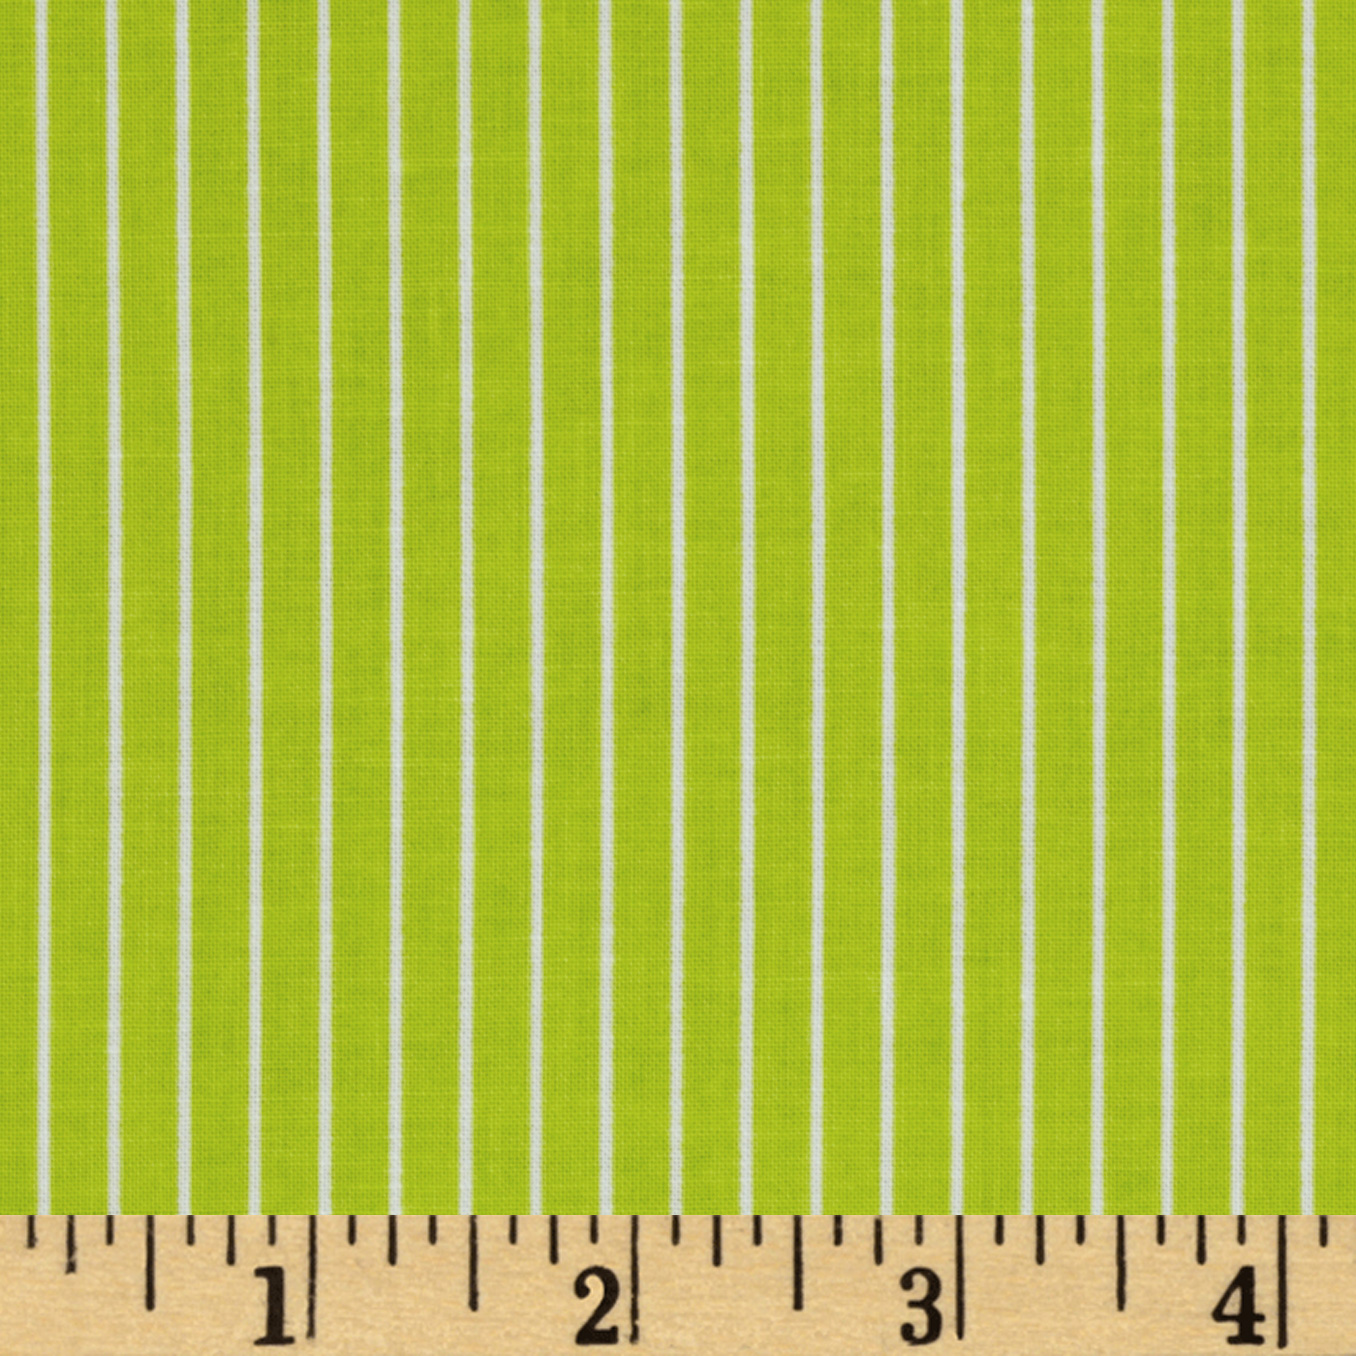 Citrus Pinstripe Lime Fabric